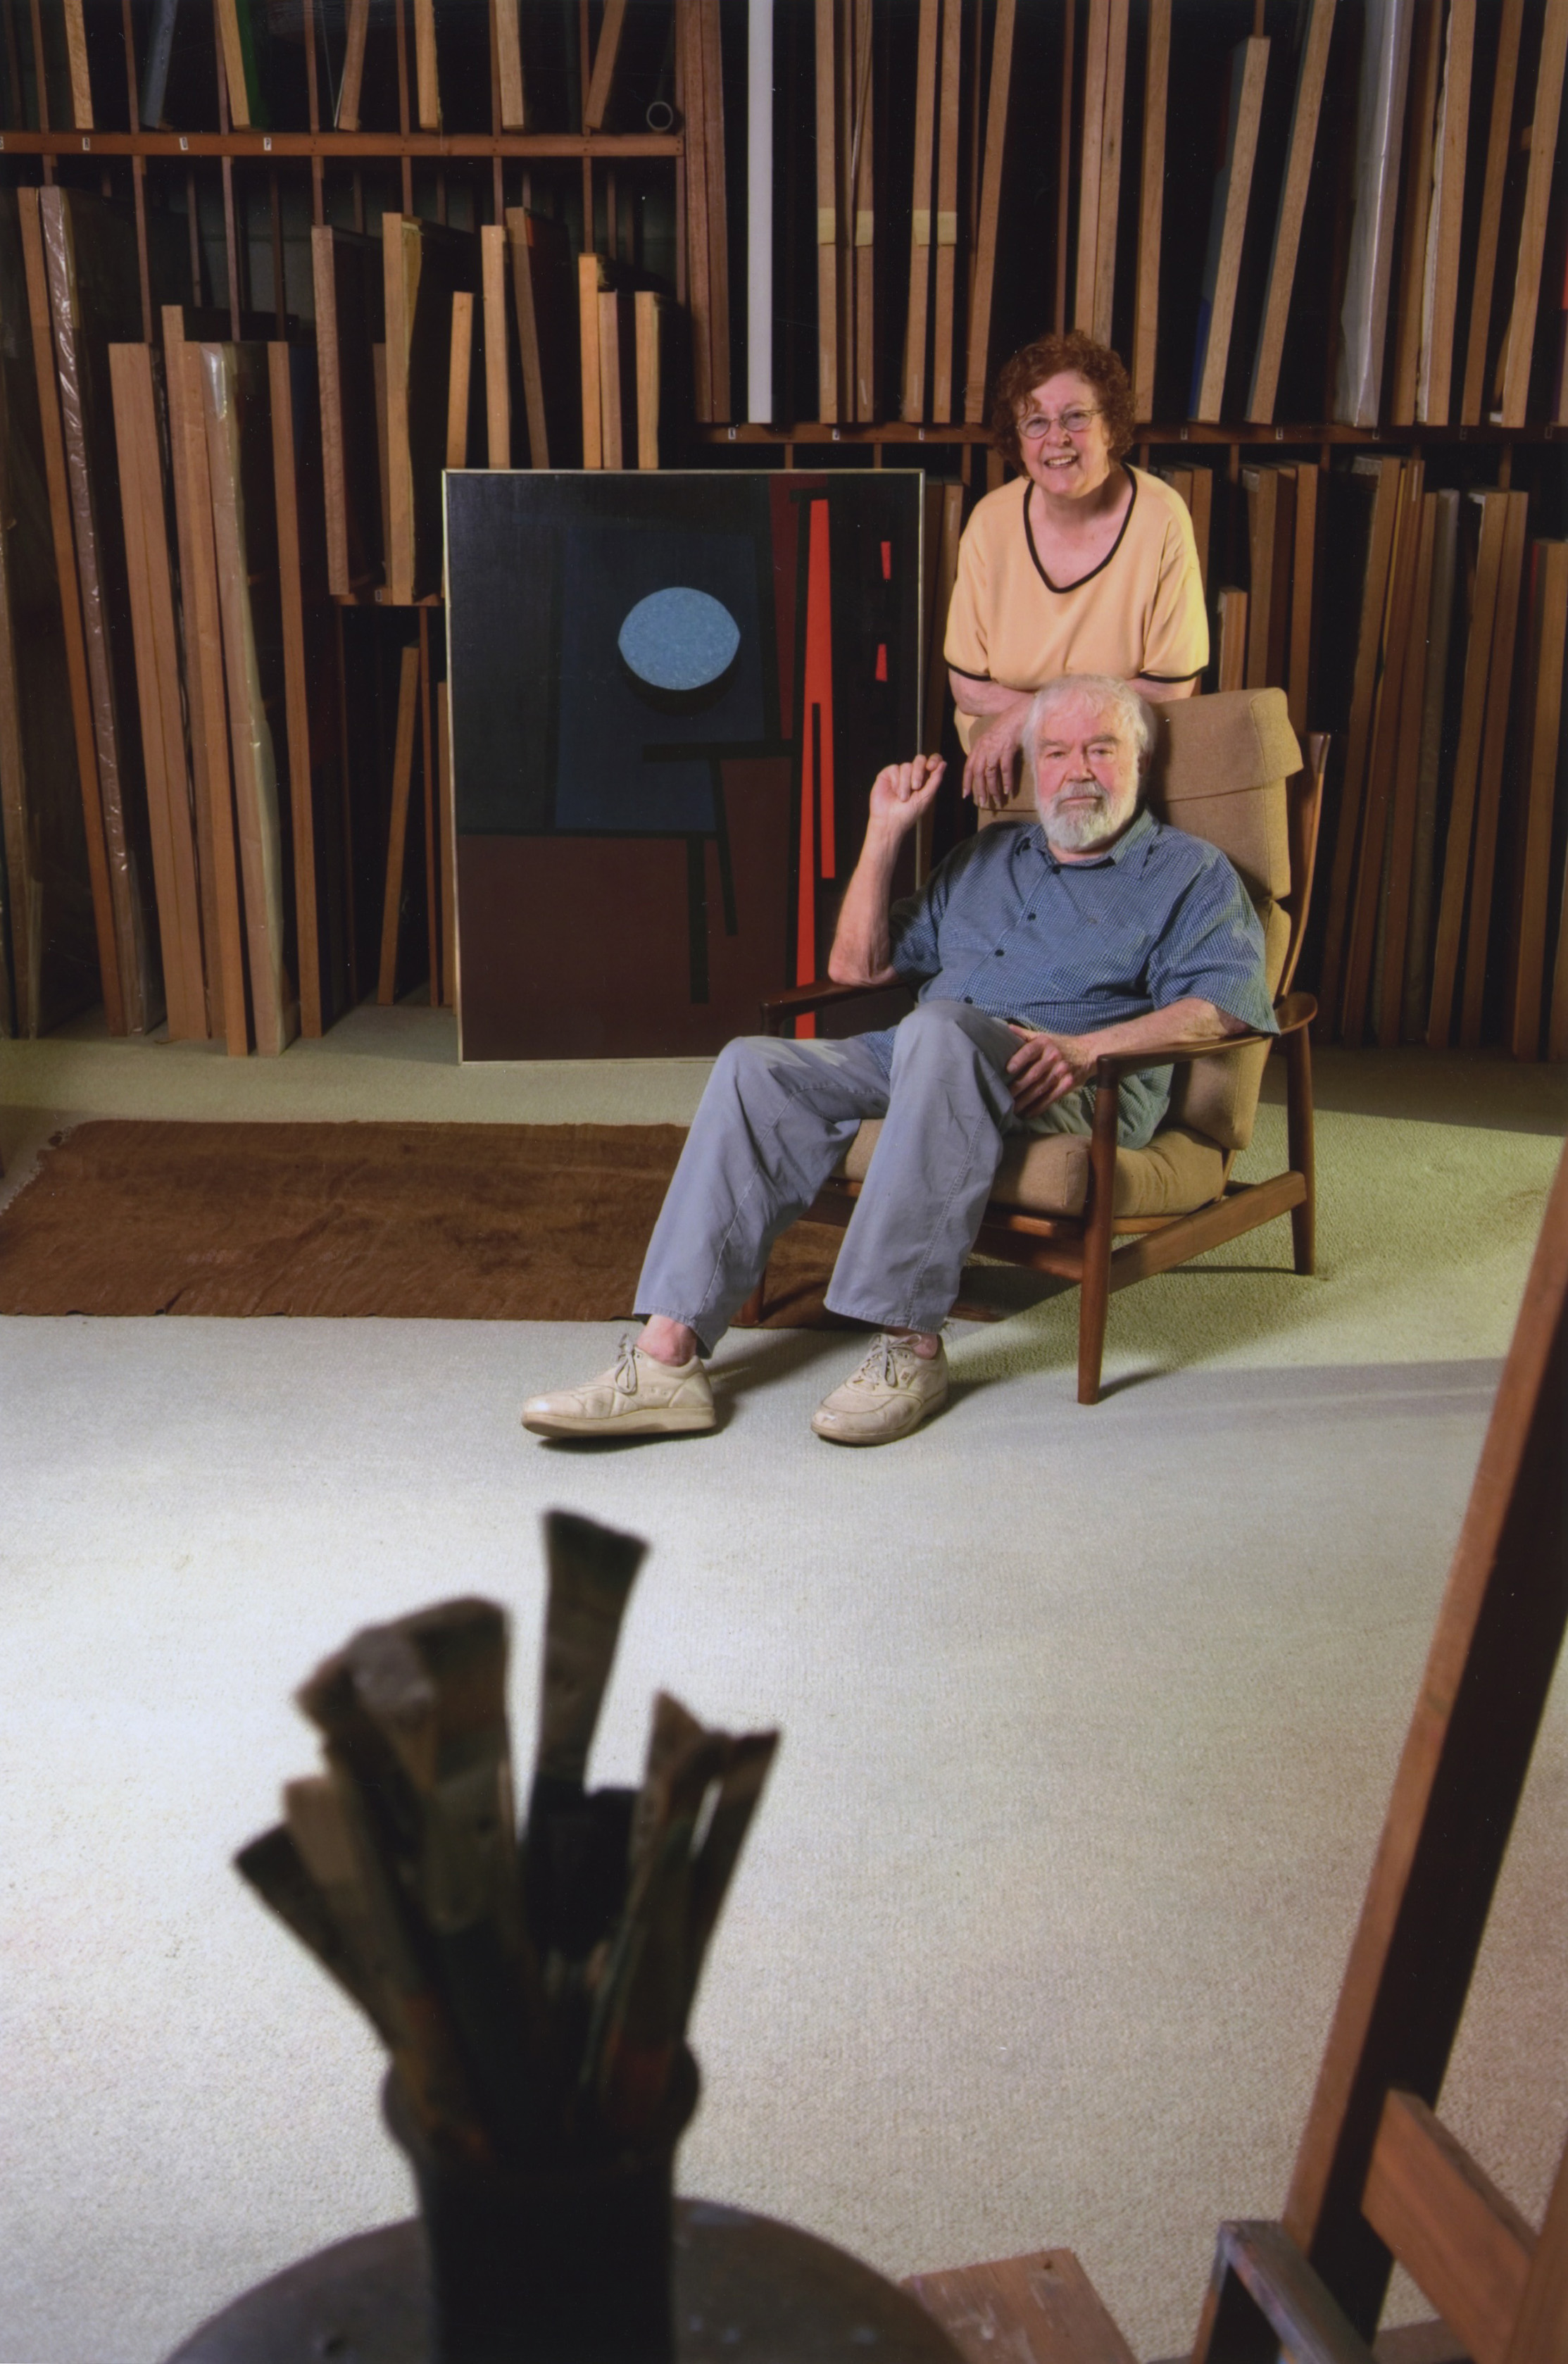 """Karl and Beverly Benjamin in the artist's studio in front of """"Tape Grid #27"""", 1961, now in the collection of the Minneapolis Institute of Arts. 2006."""